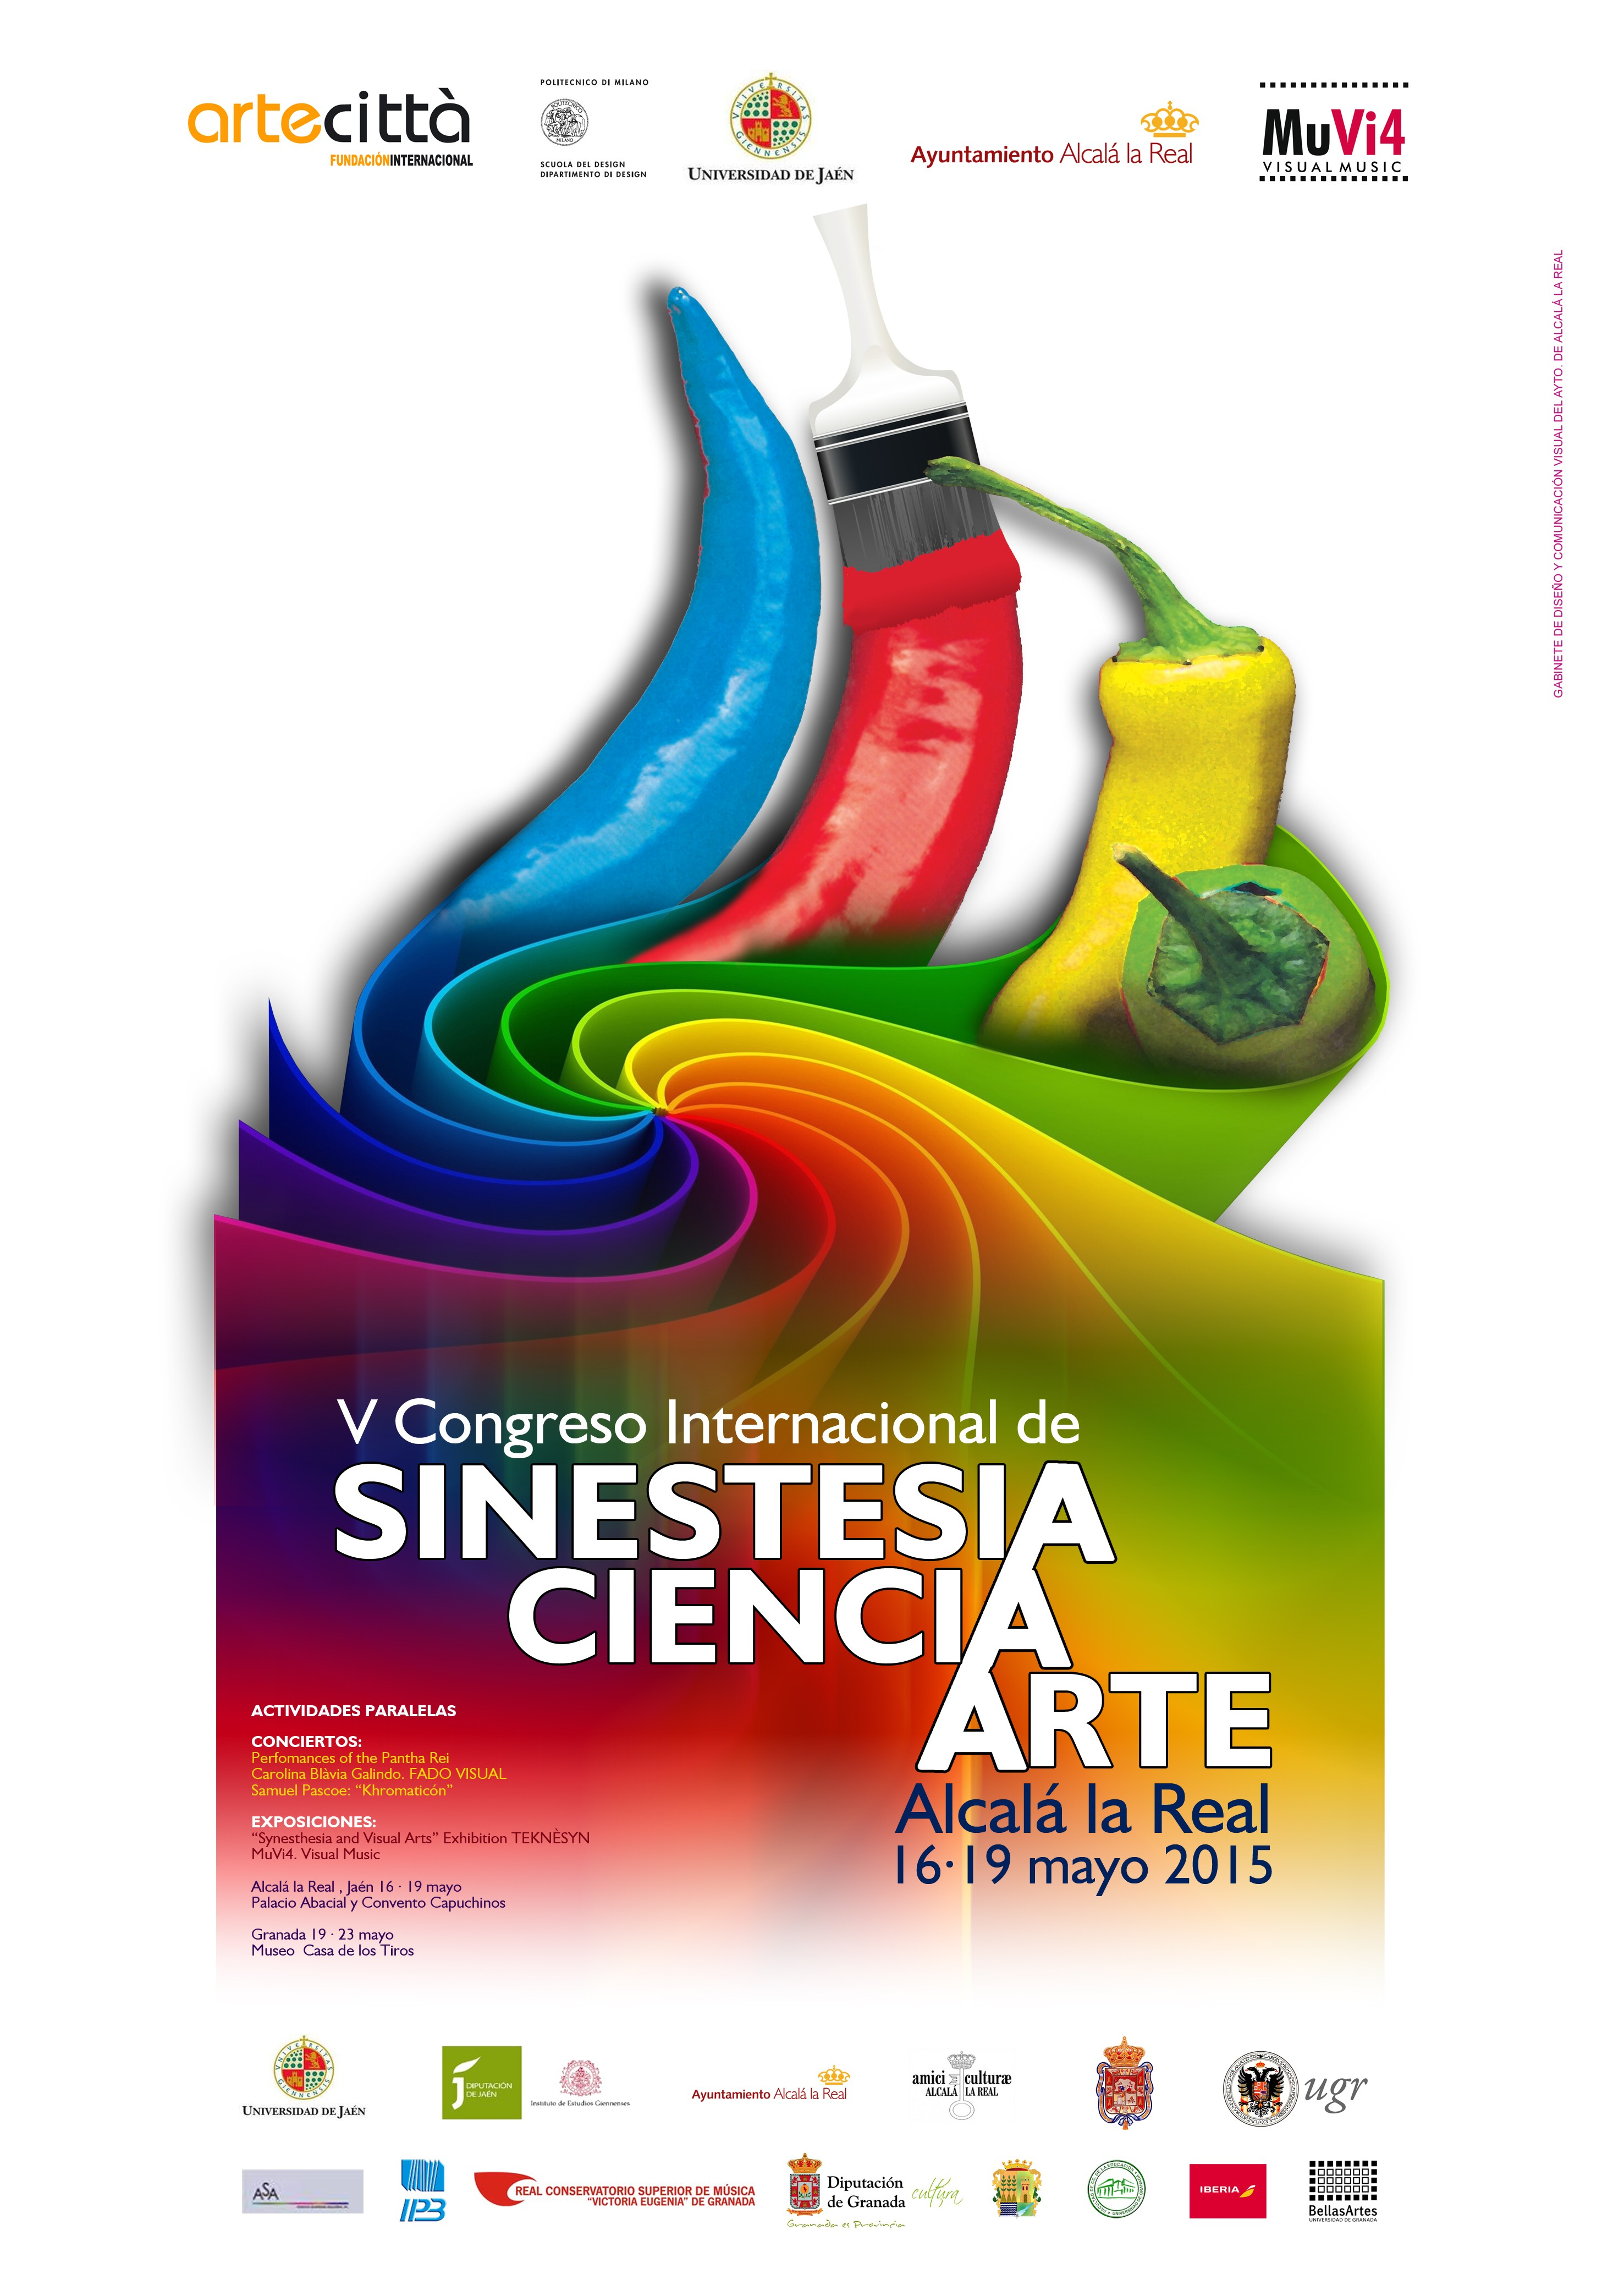 synesthesia, sceince and art International congress2015